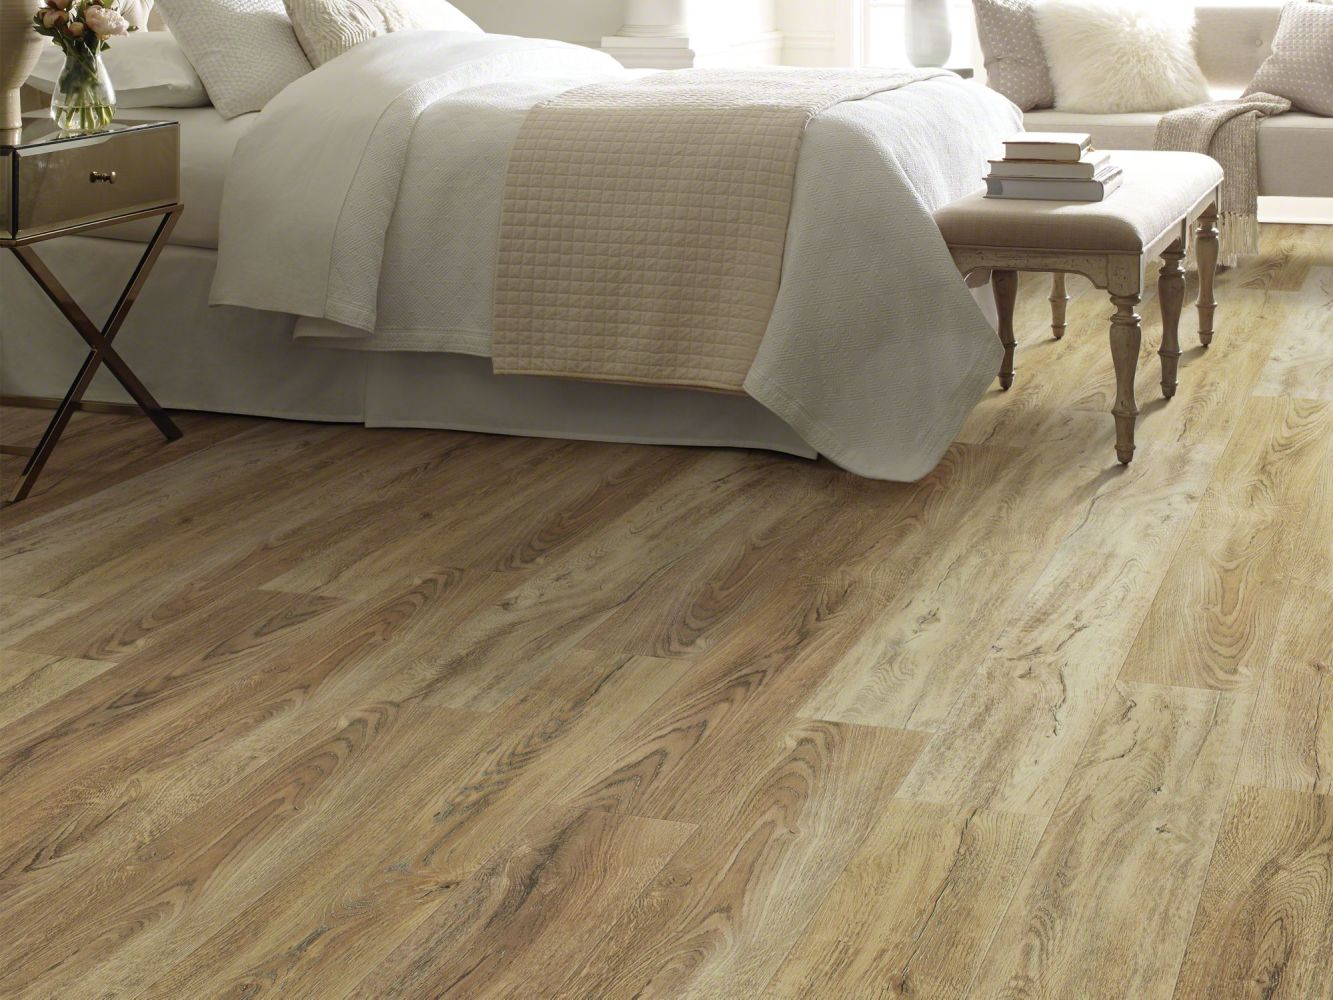 Shaw Floors Resilient Residential Mojave HD Plus Foresta 00282_0461V